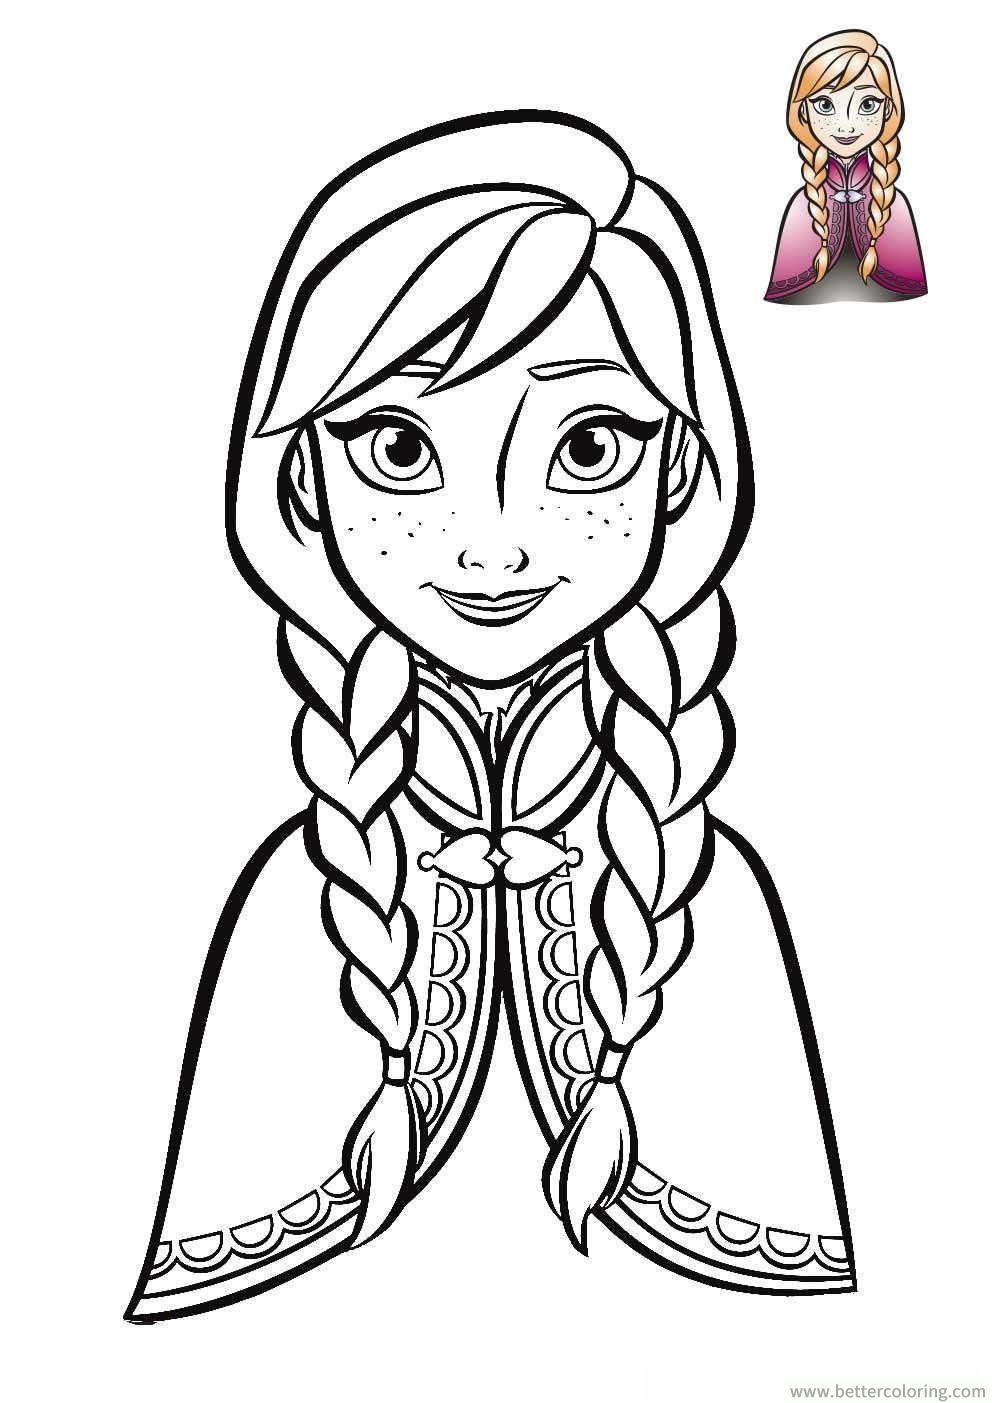 Frozen Coloring Pages Anna Face : Disney anna frozen face coloring pages printable for